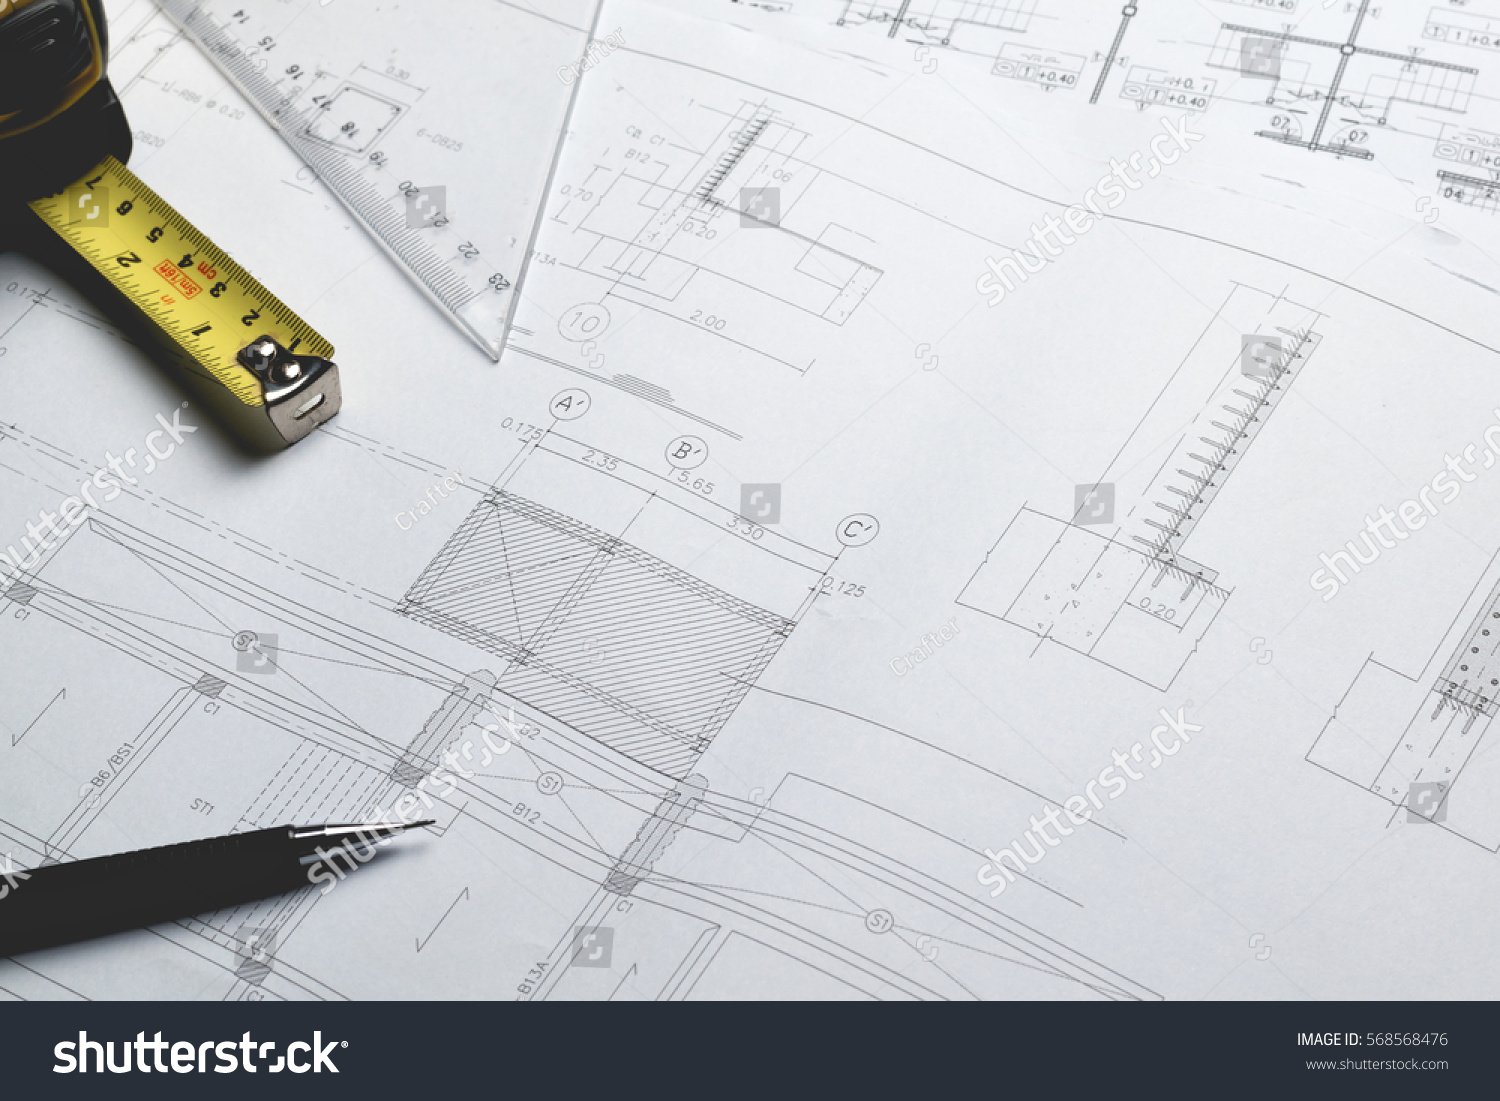 Engineering diagram blueprint paper drafting project stock for Paper for architectural drawings